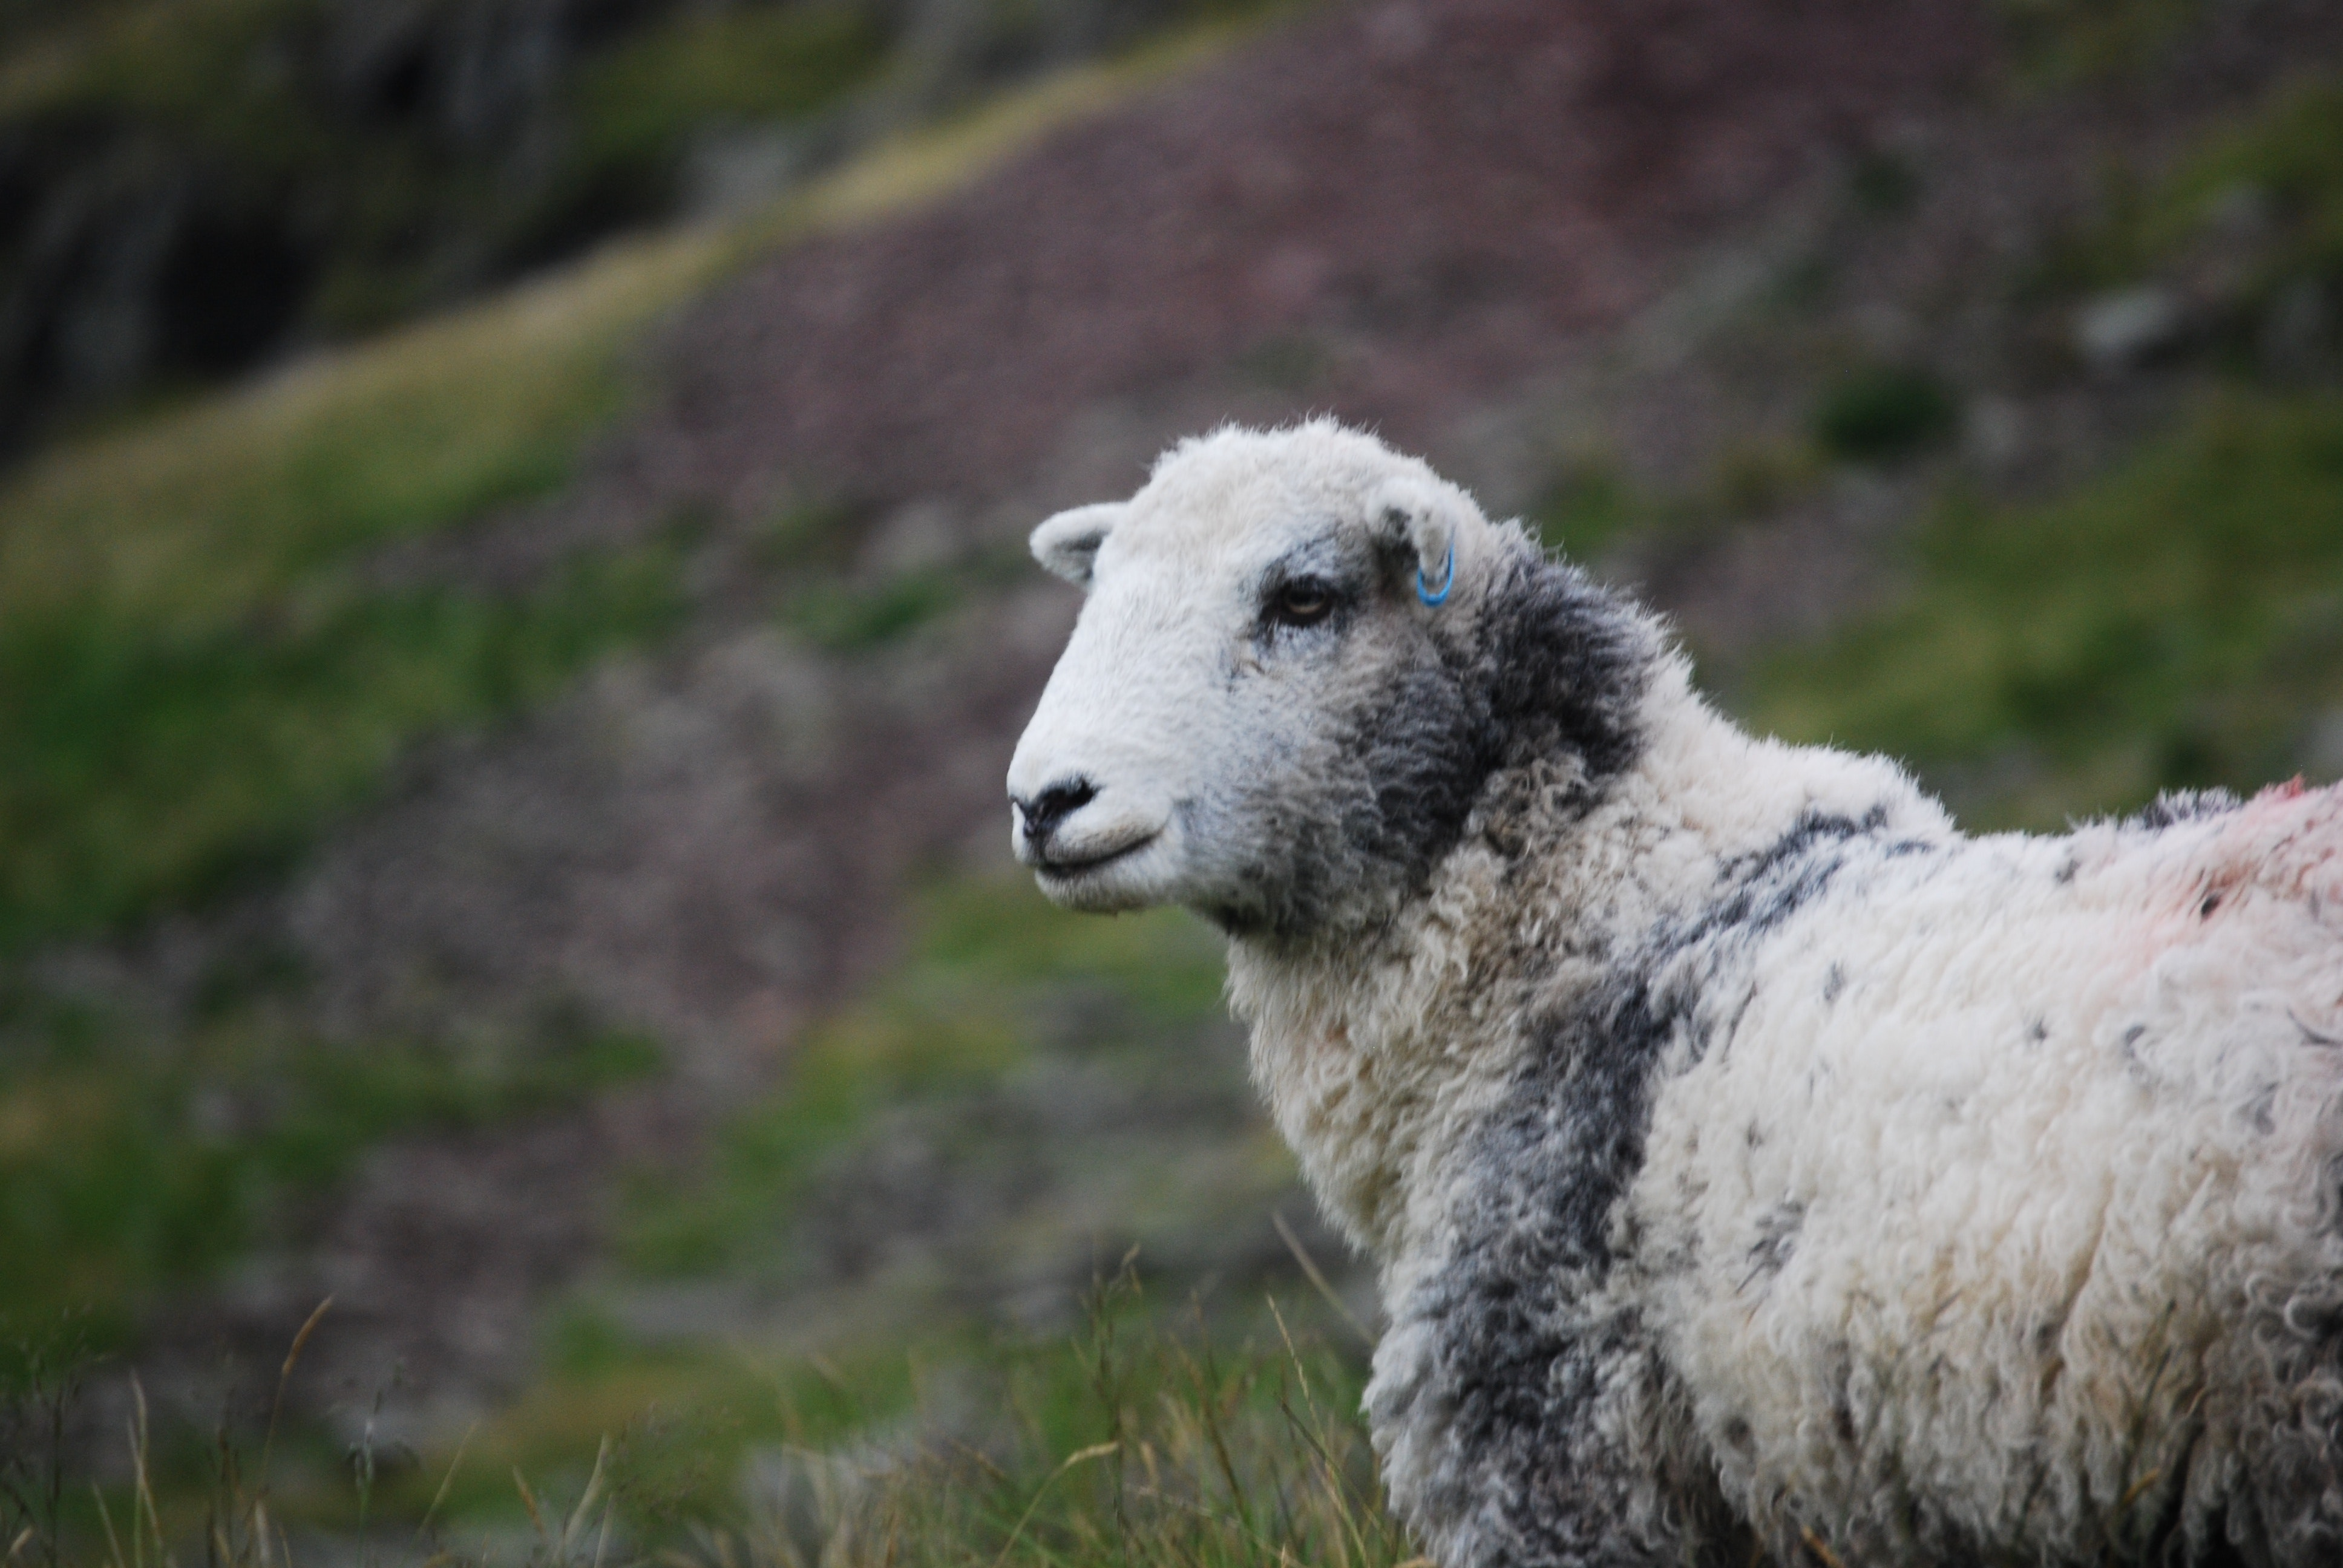 White and Gray Sheep · Free Stock Photo